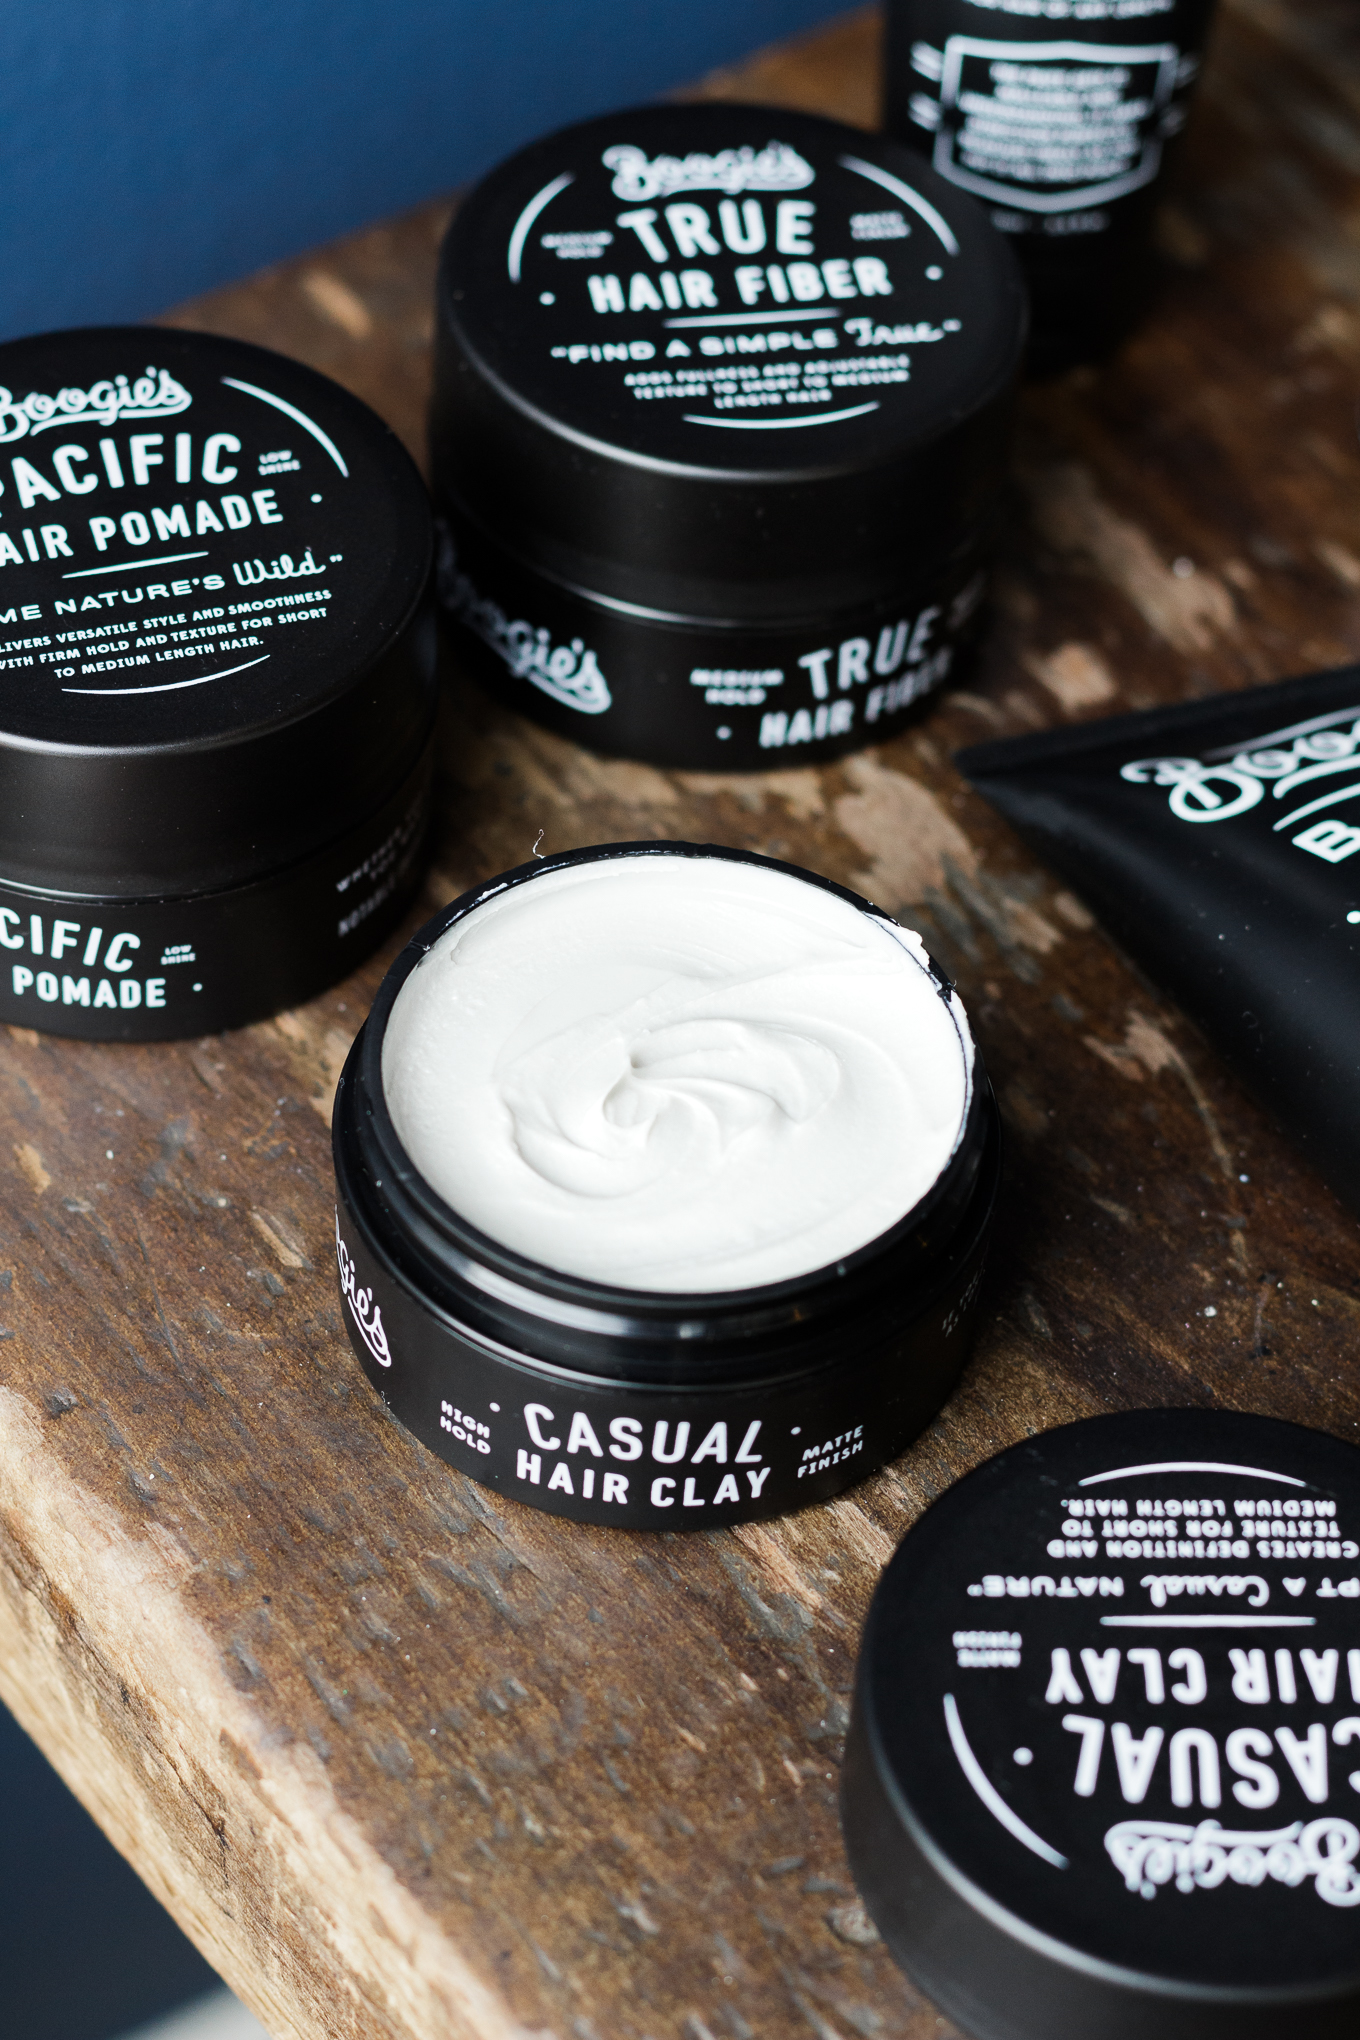 dollar shave club, mens grooming company, style by boogie, mens grooming blog, mens haircare